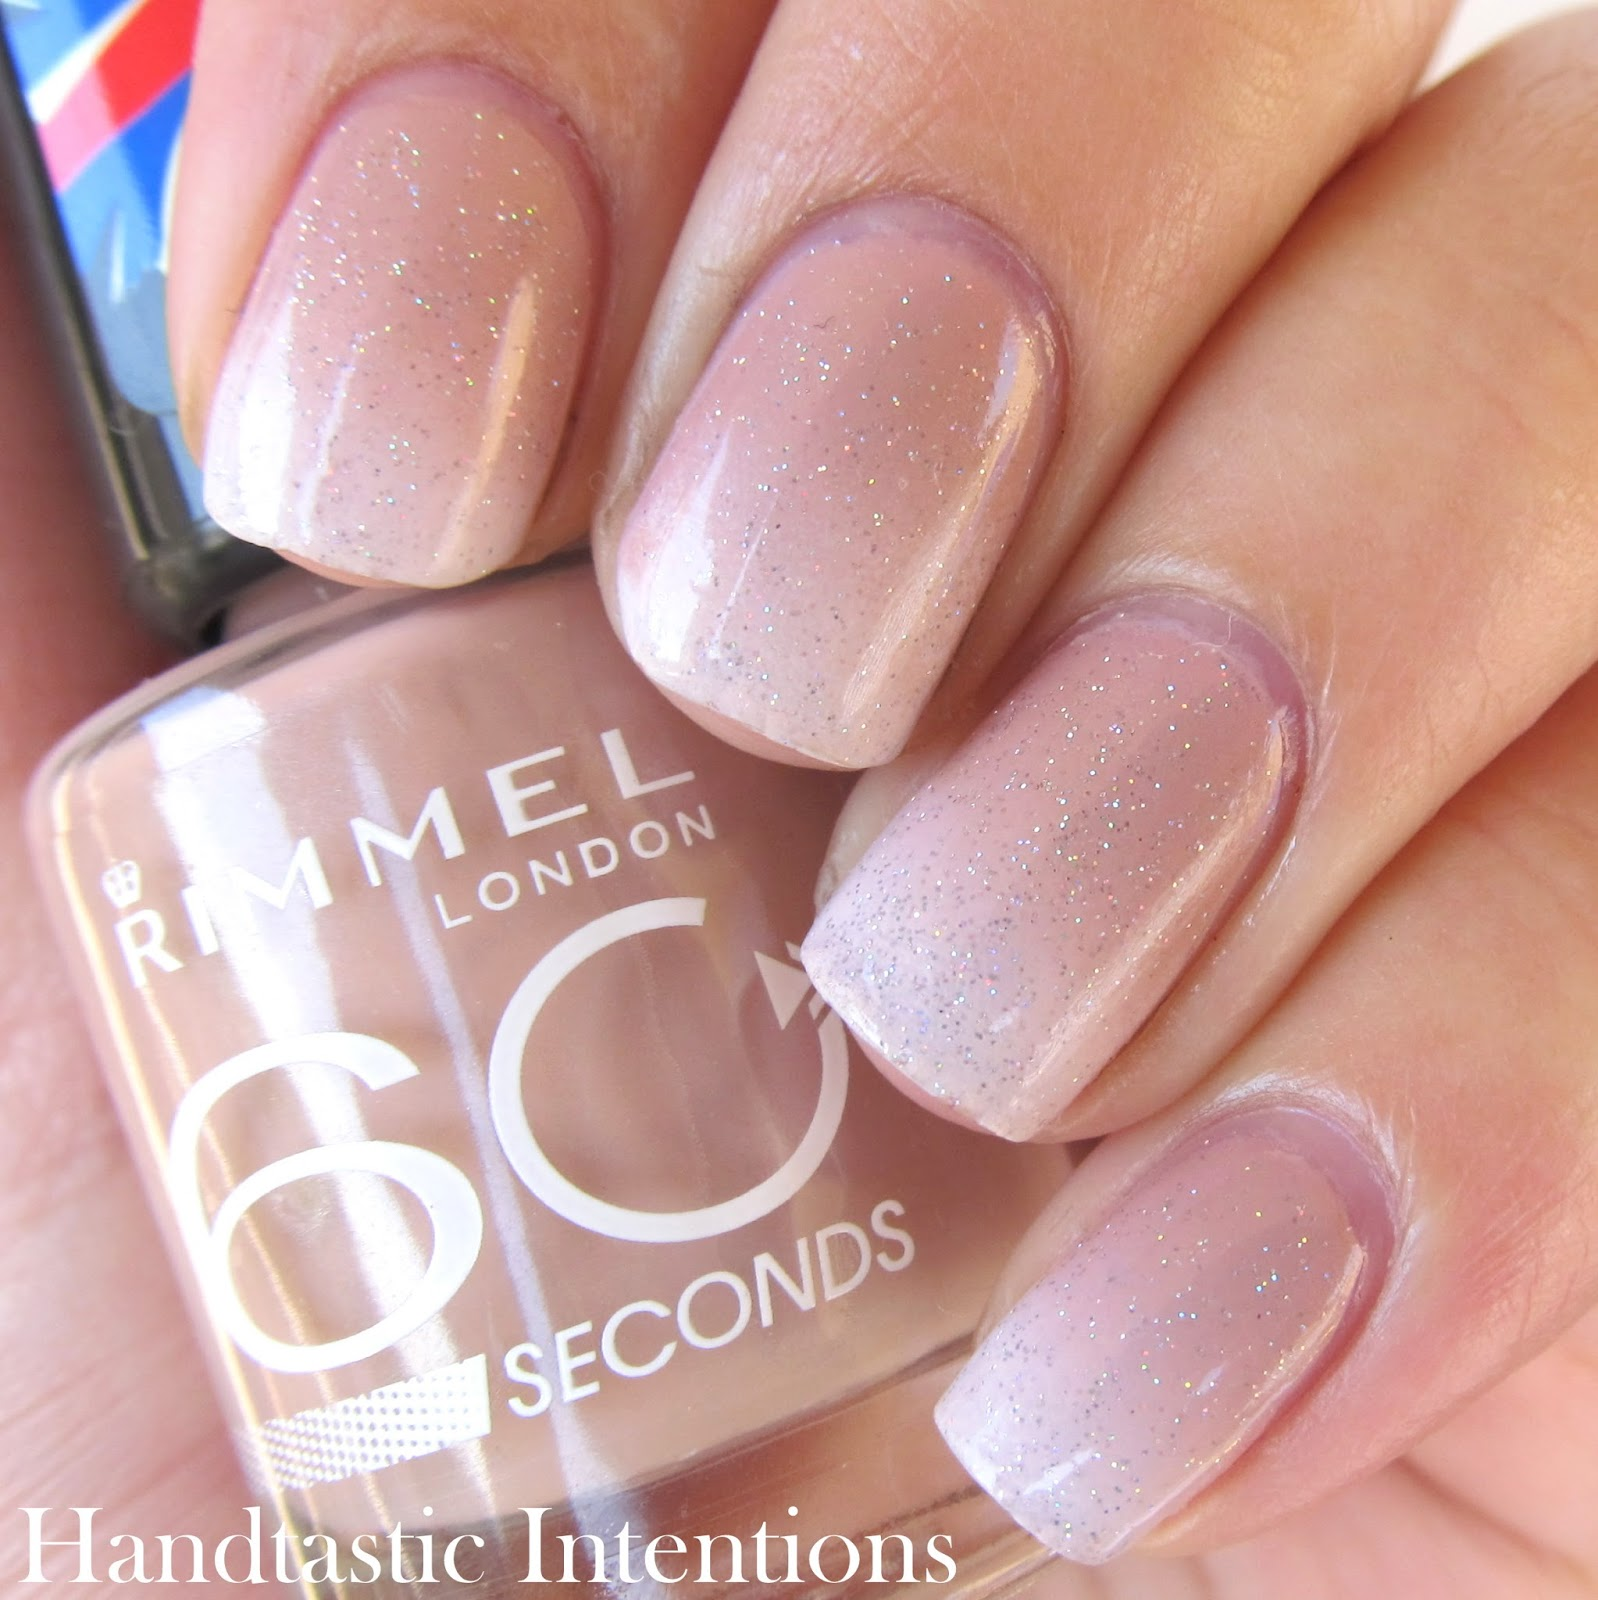 Handtastic Intentions Nail Art 31dc2014 Day 10 Gradient